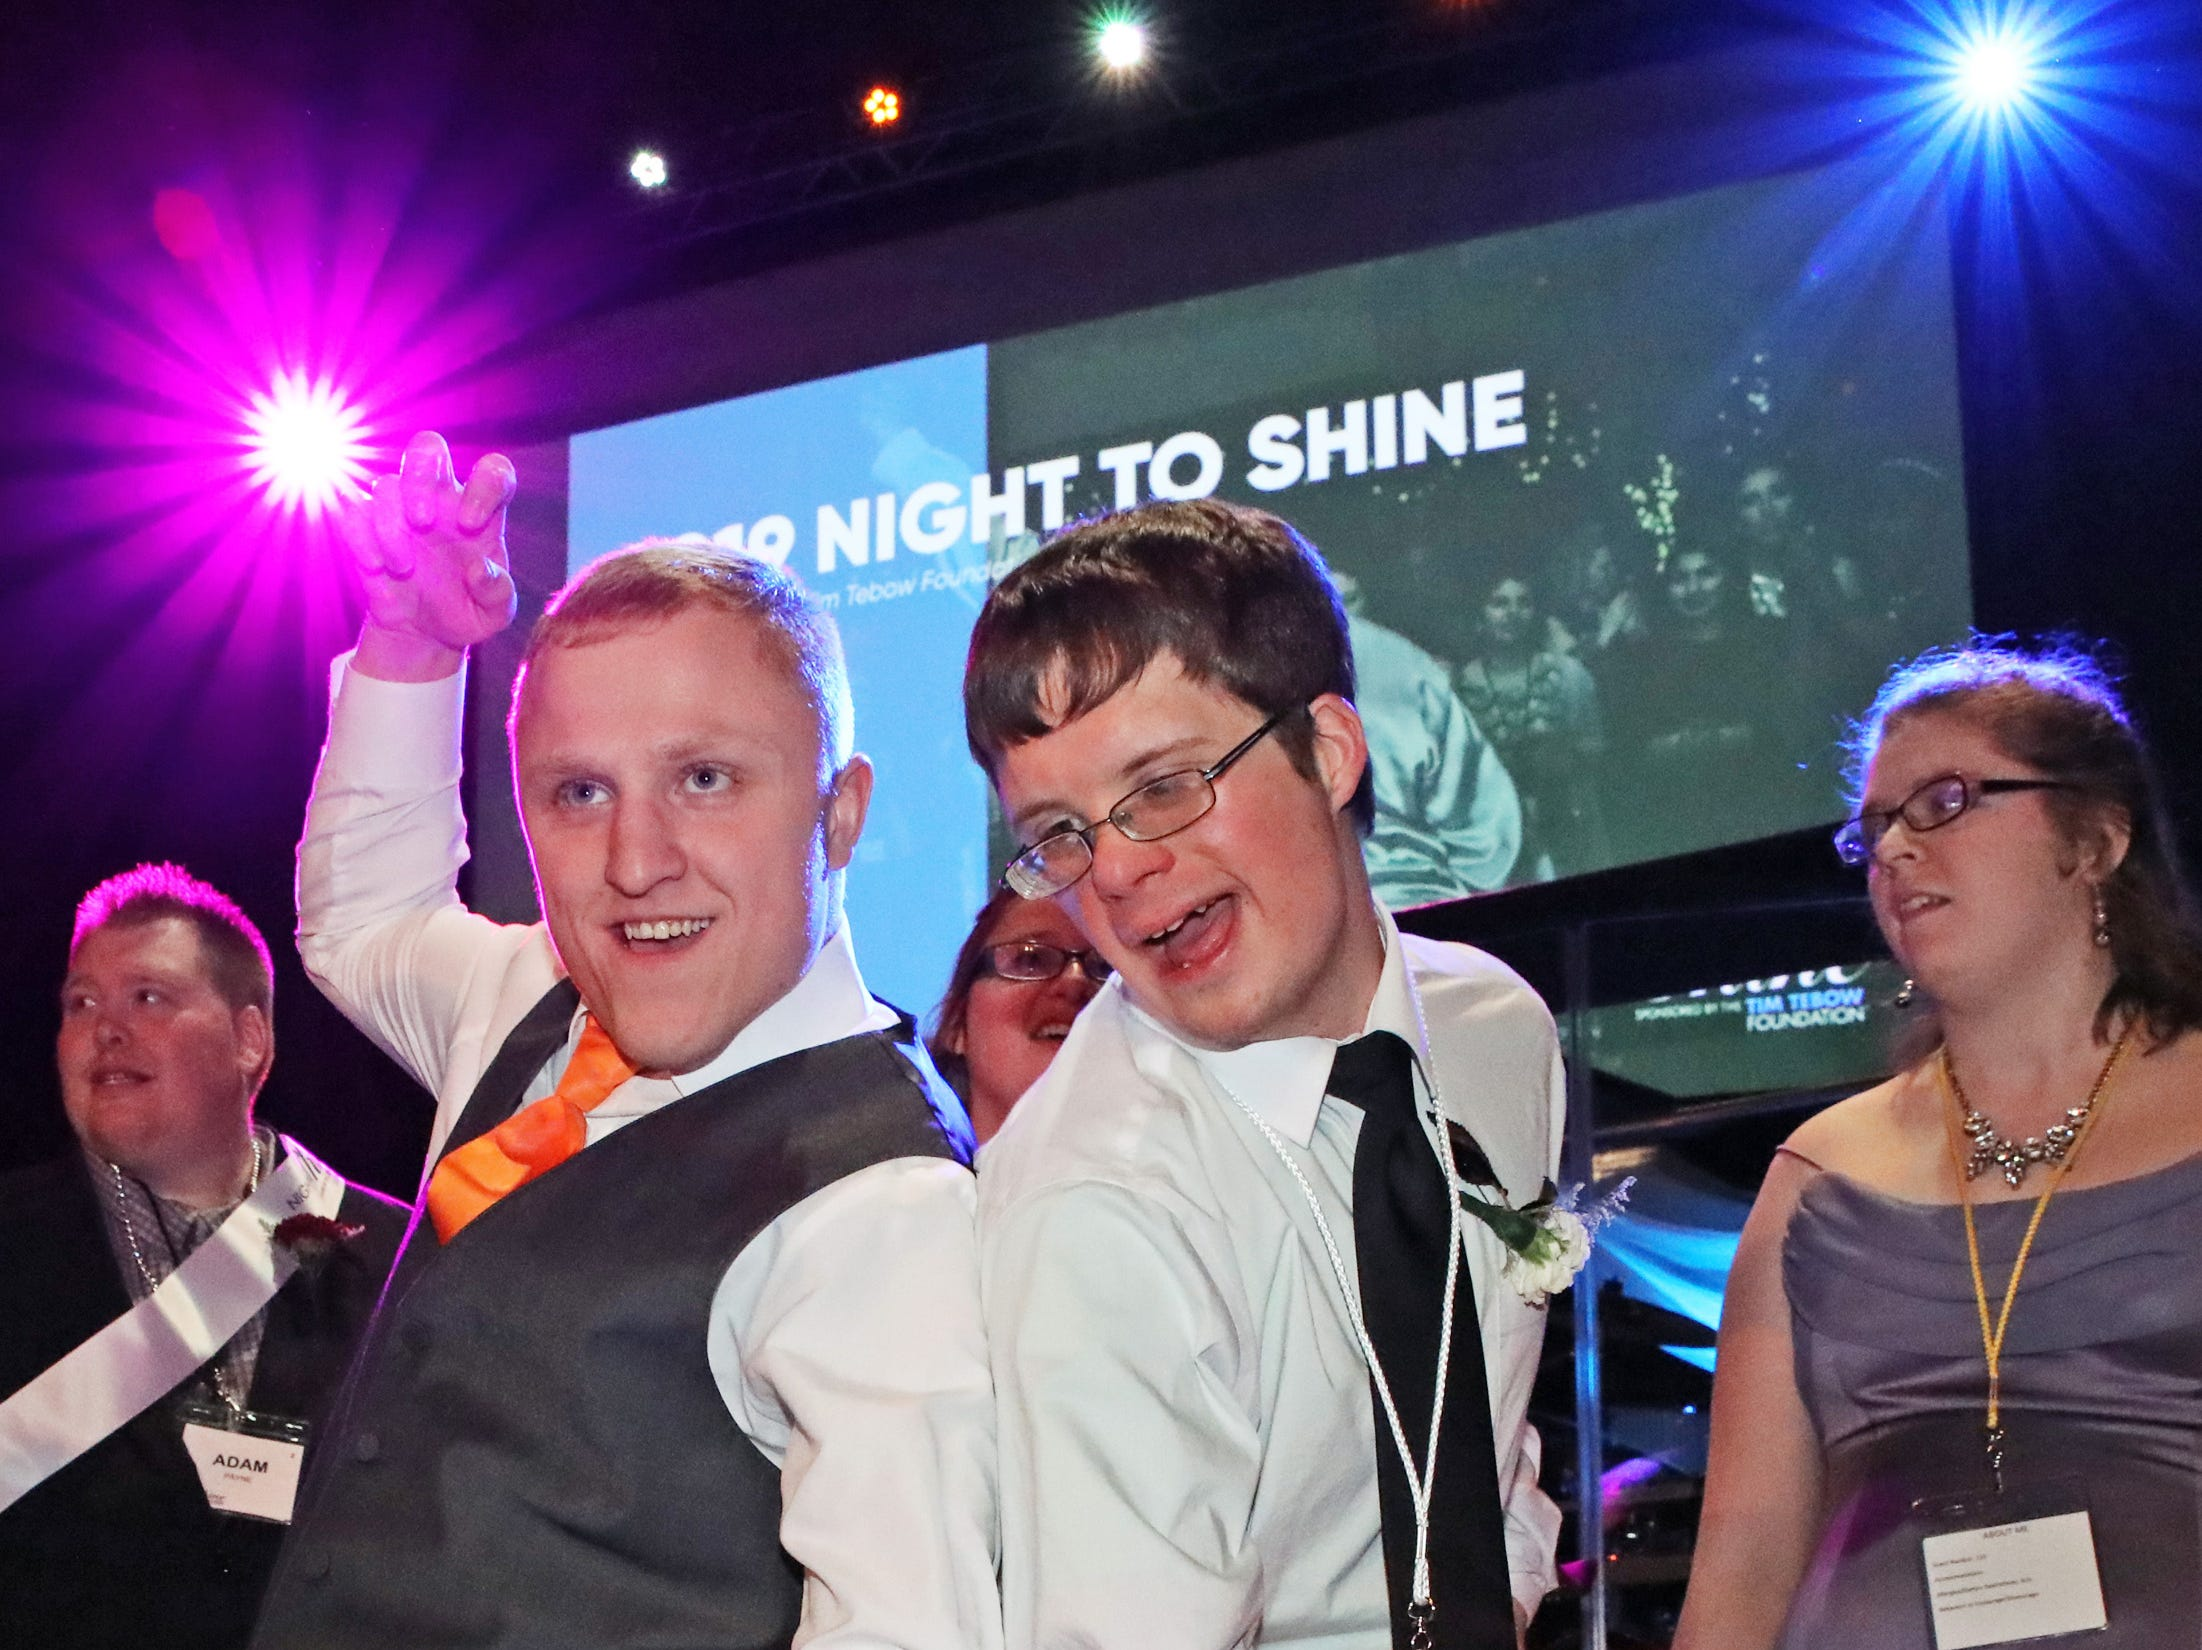 Cole Quinlin, left, and Steven Strennen of Ankeny have a blast at the Night to Shine event at Prairie Ridge Church in Ankeny on Friday, Feb. 8, 2019. Sponsored by the Tim Tebow Foundation, the event for adults with special needs features a prom-like atmosphere with dancing, limo rides, food and more.